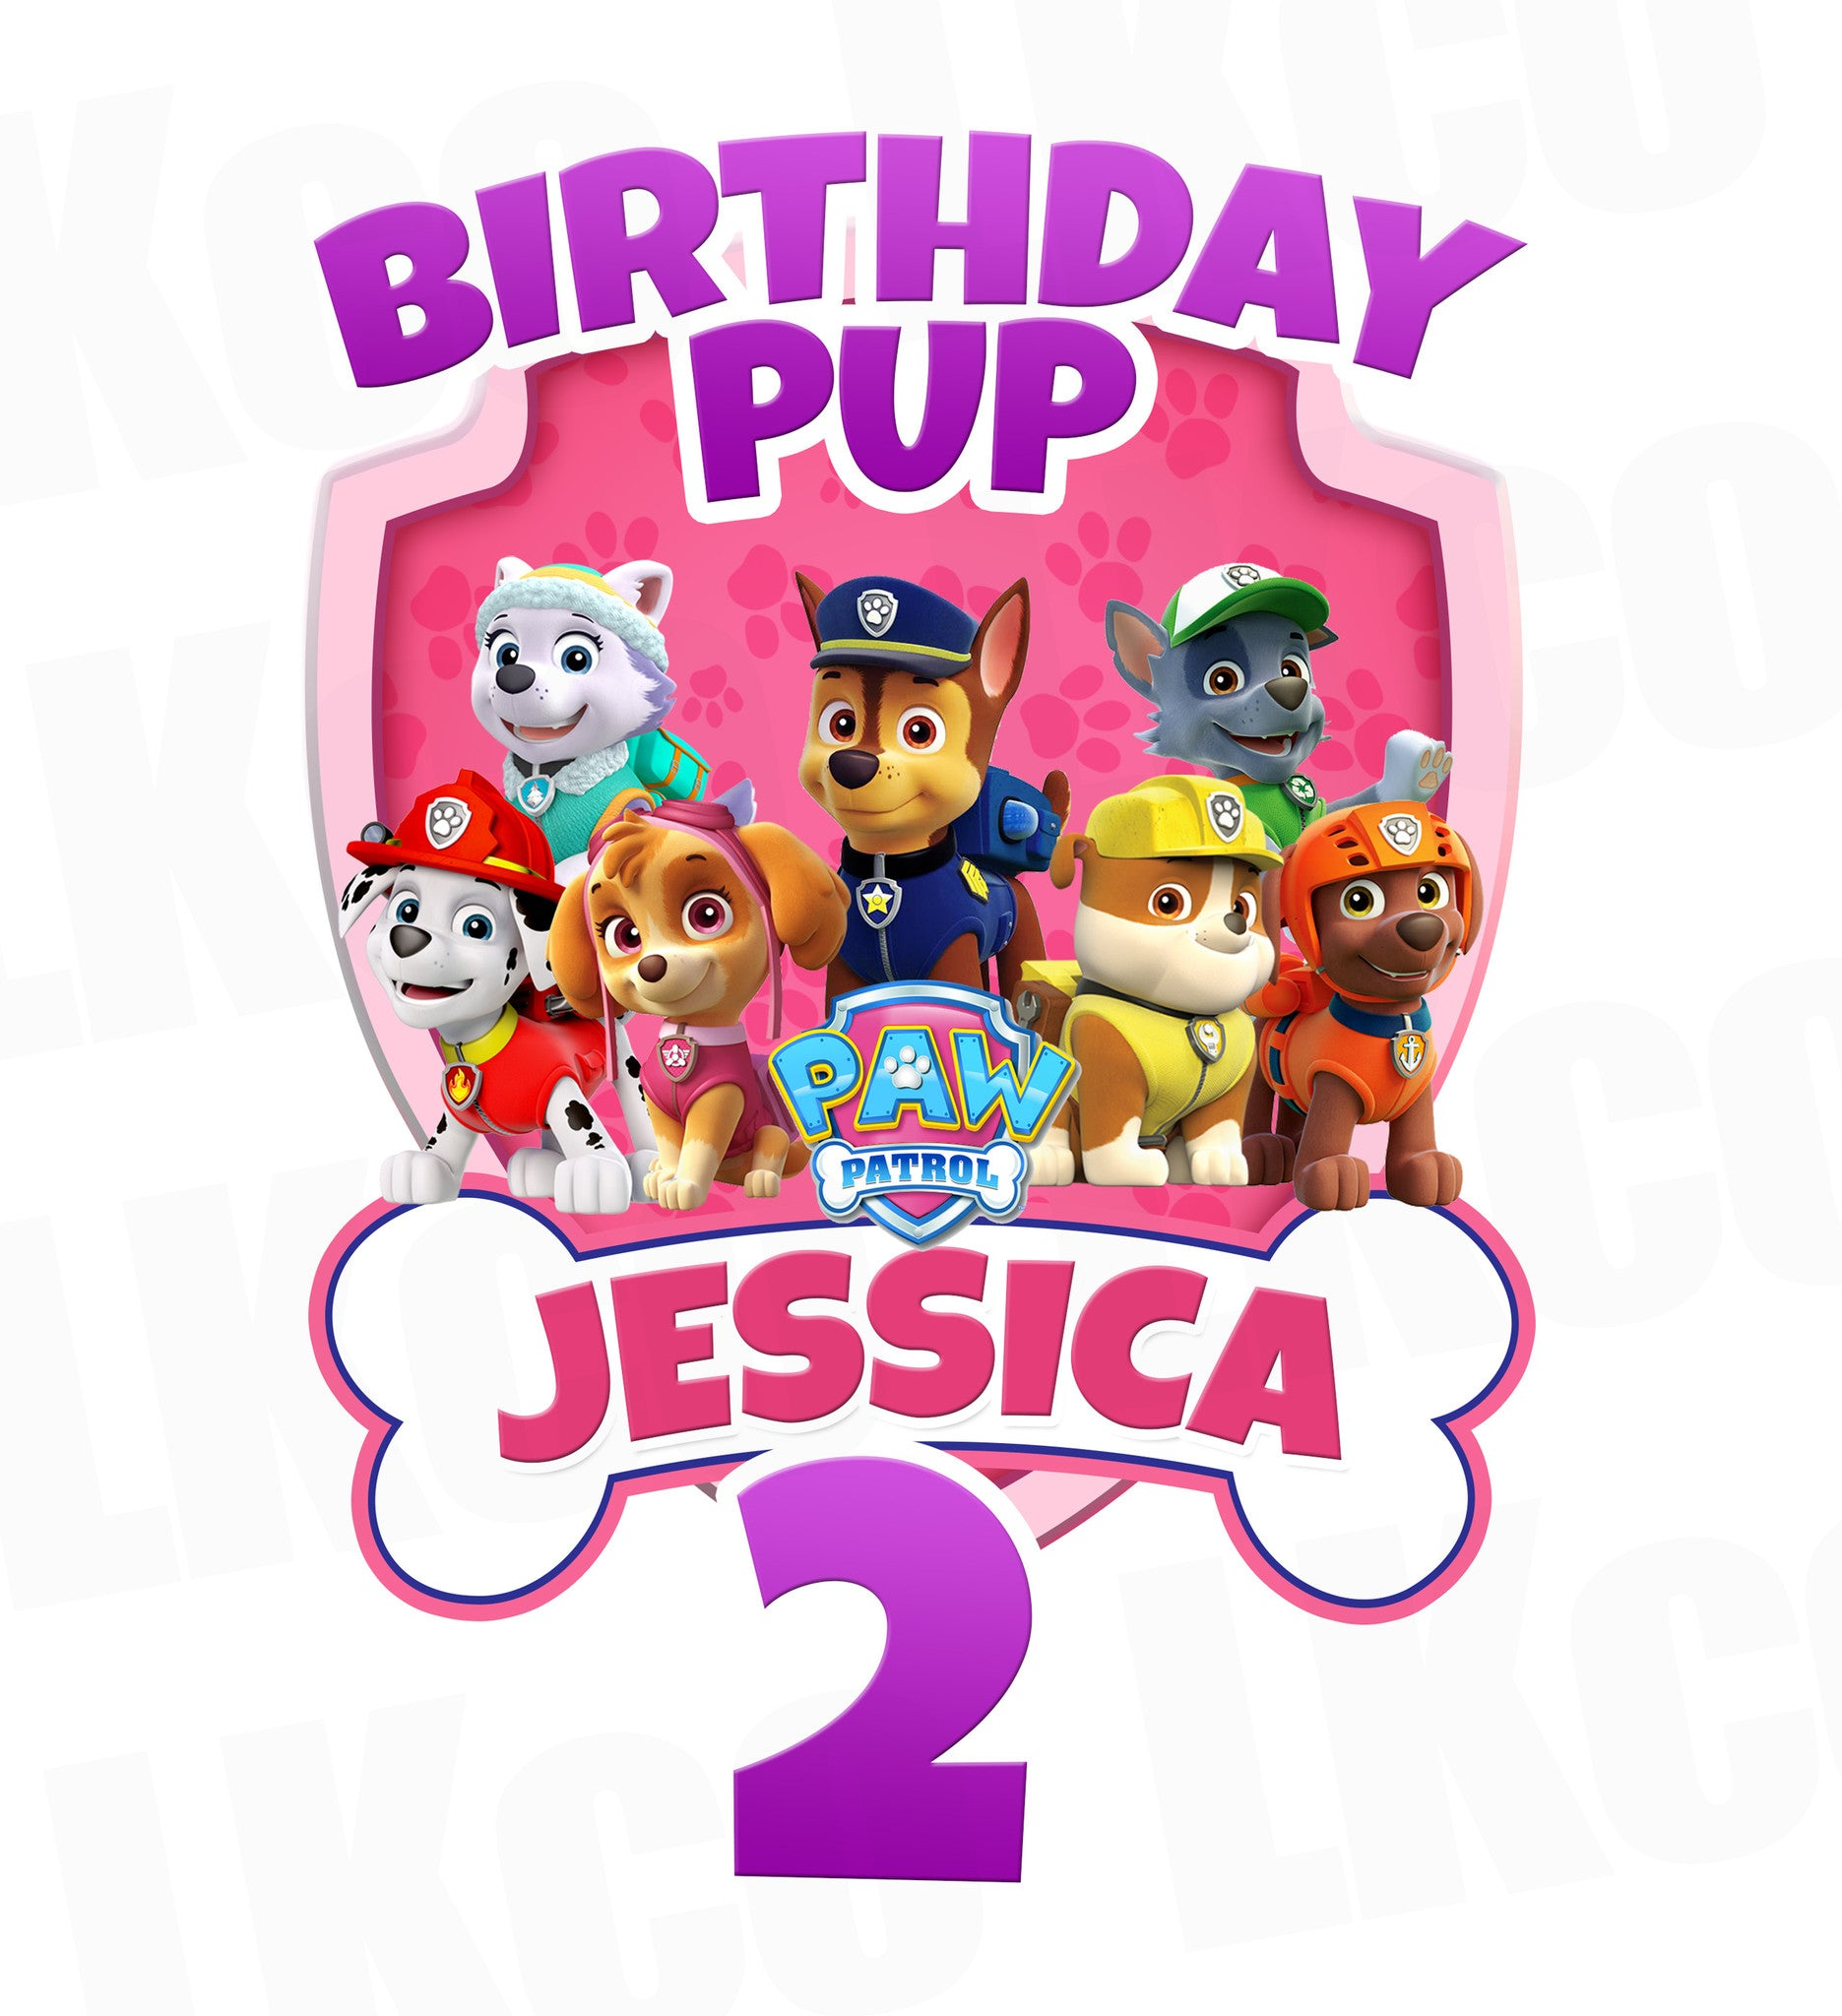 Paw Patrol Iron On Transfer - Pink Bone | Birthday Pup